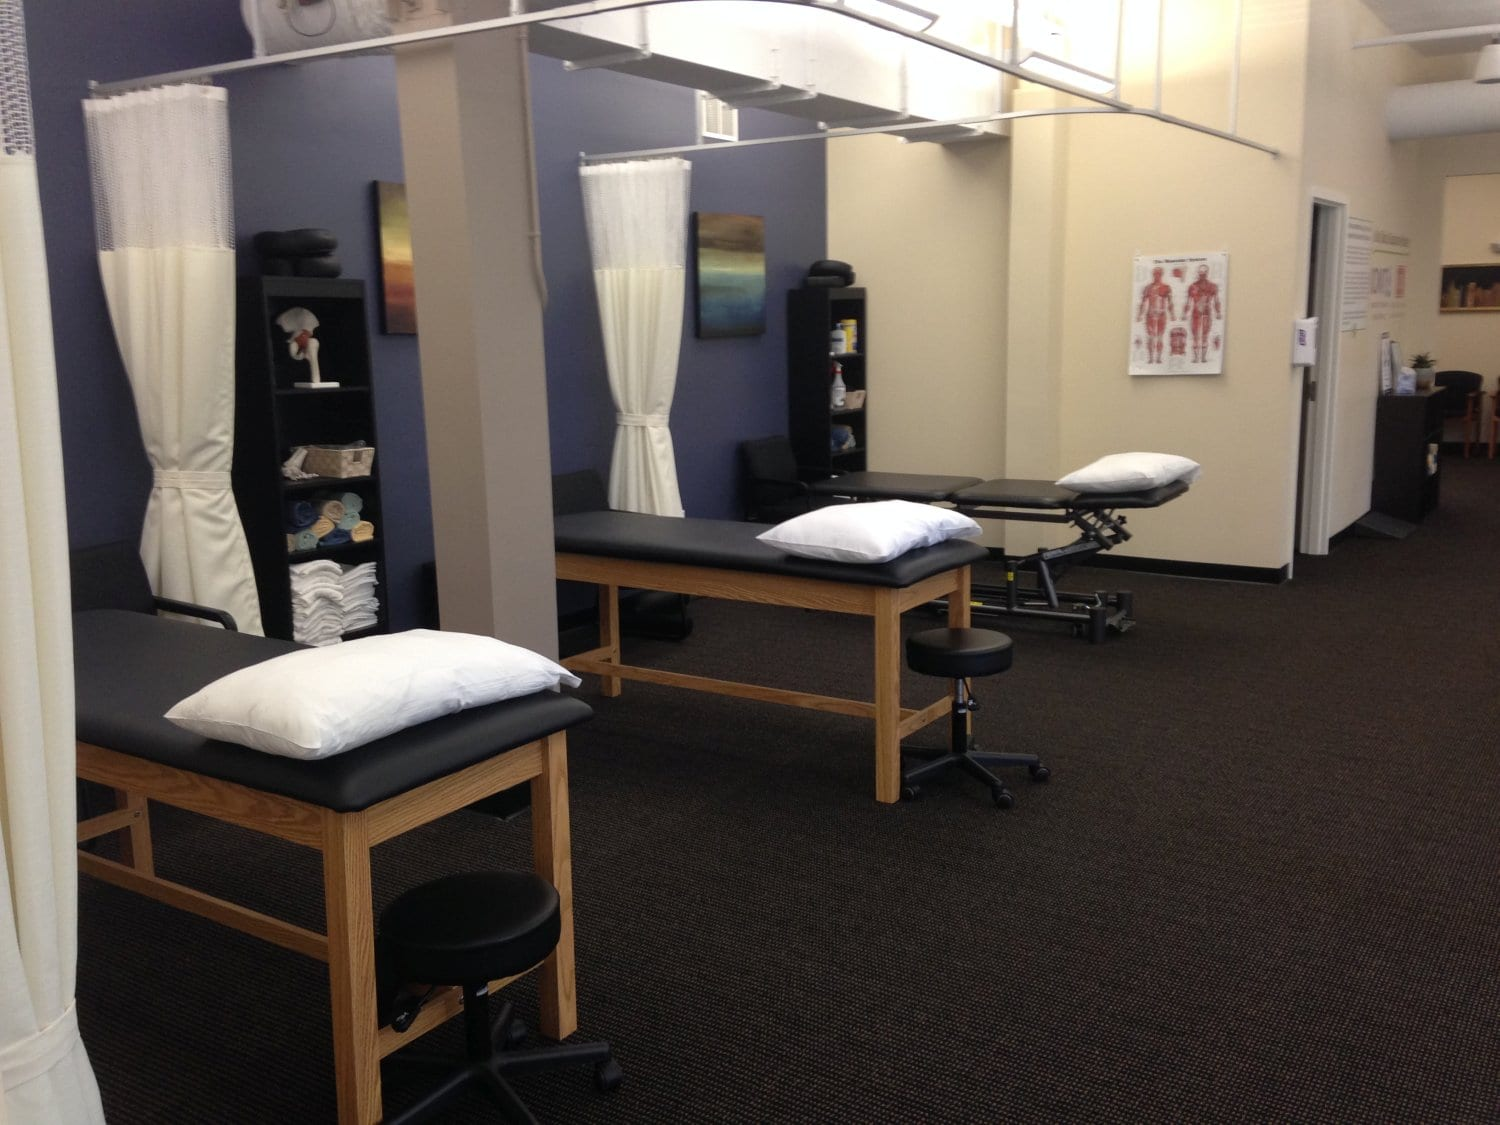 Here is a shot of the clean beds at our physical therapy clinic in Watertown, Massachusetts.